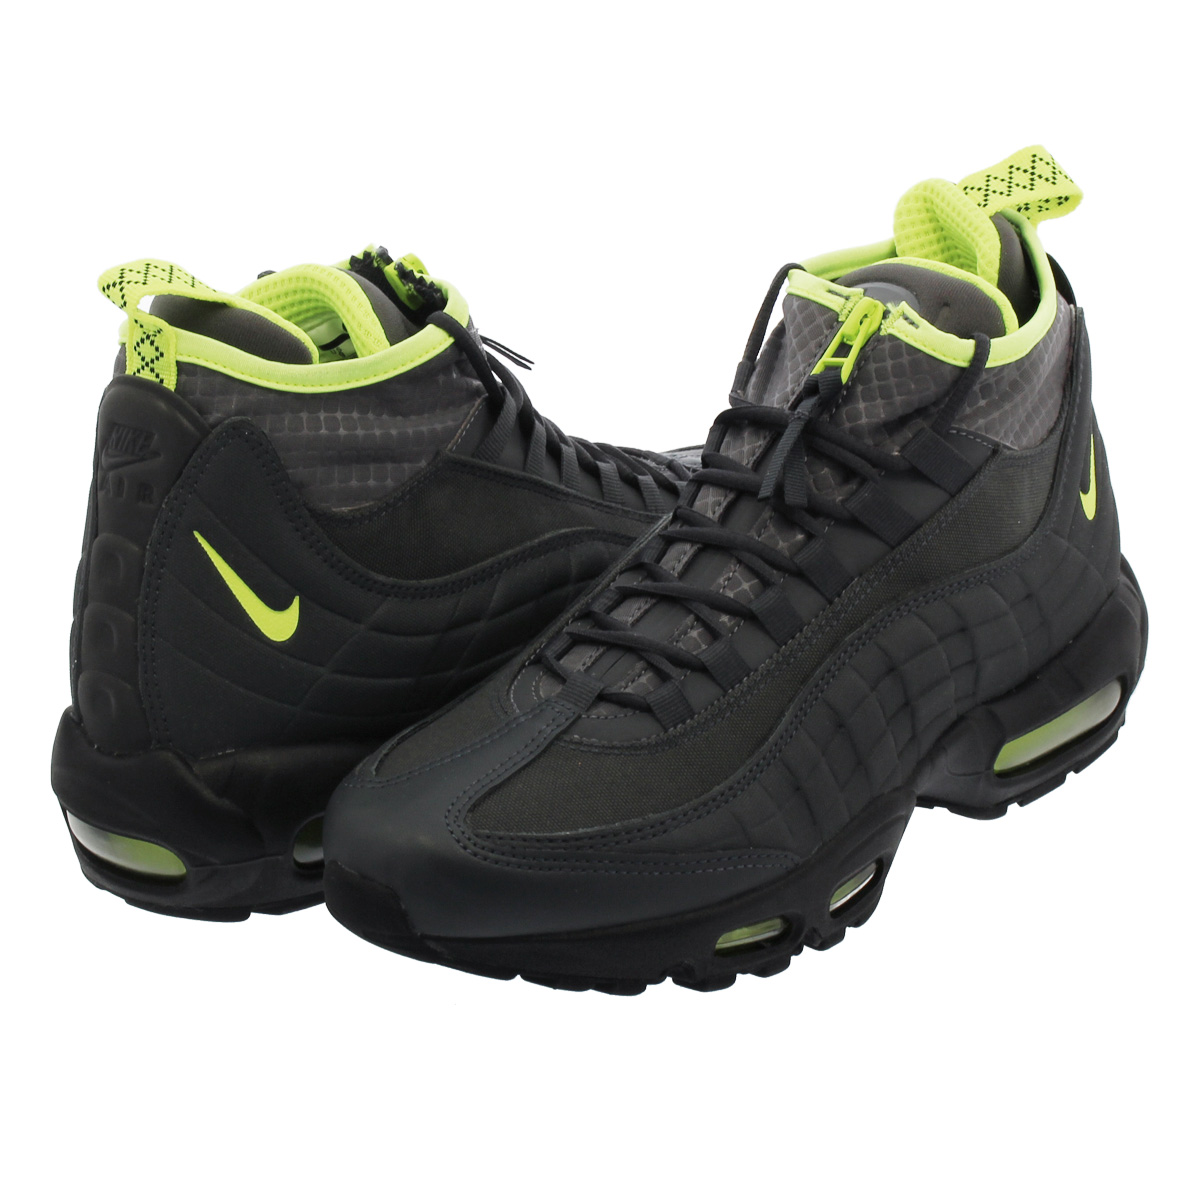 on sale 82ee4 ce4d8 NIKE AIR MAX 95 SNEAKERBOOT Kie Ney AMAX 95 sneakers boots ANTHRACITE VOLT  DARK ...